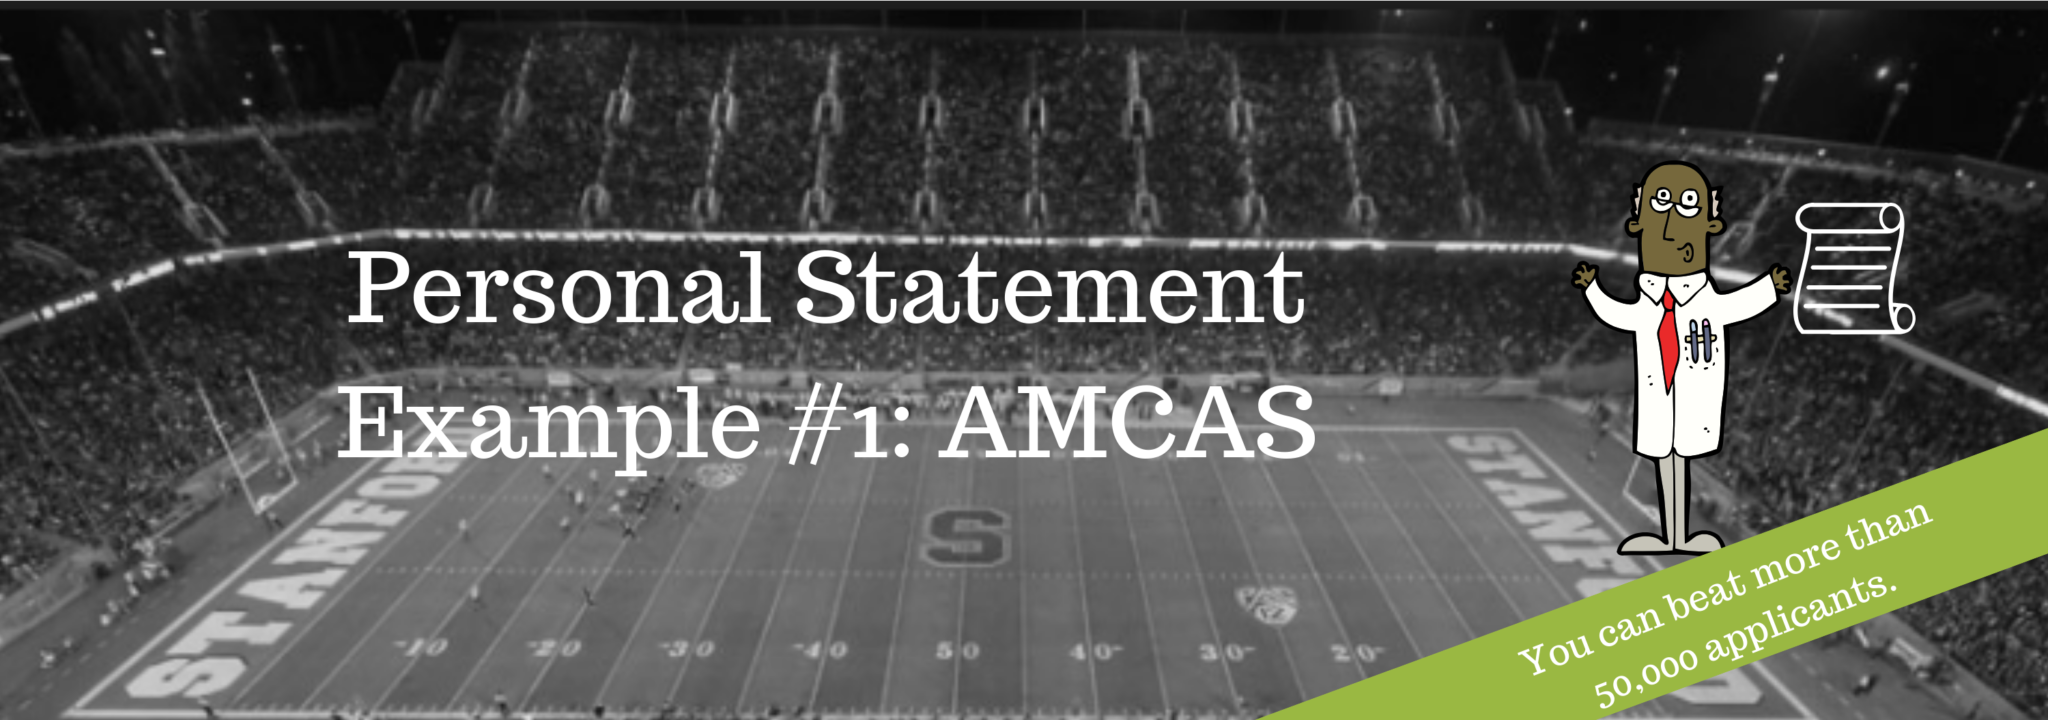 Personal Statement Example #1 AMCAS